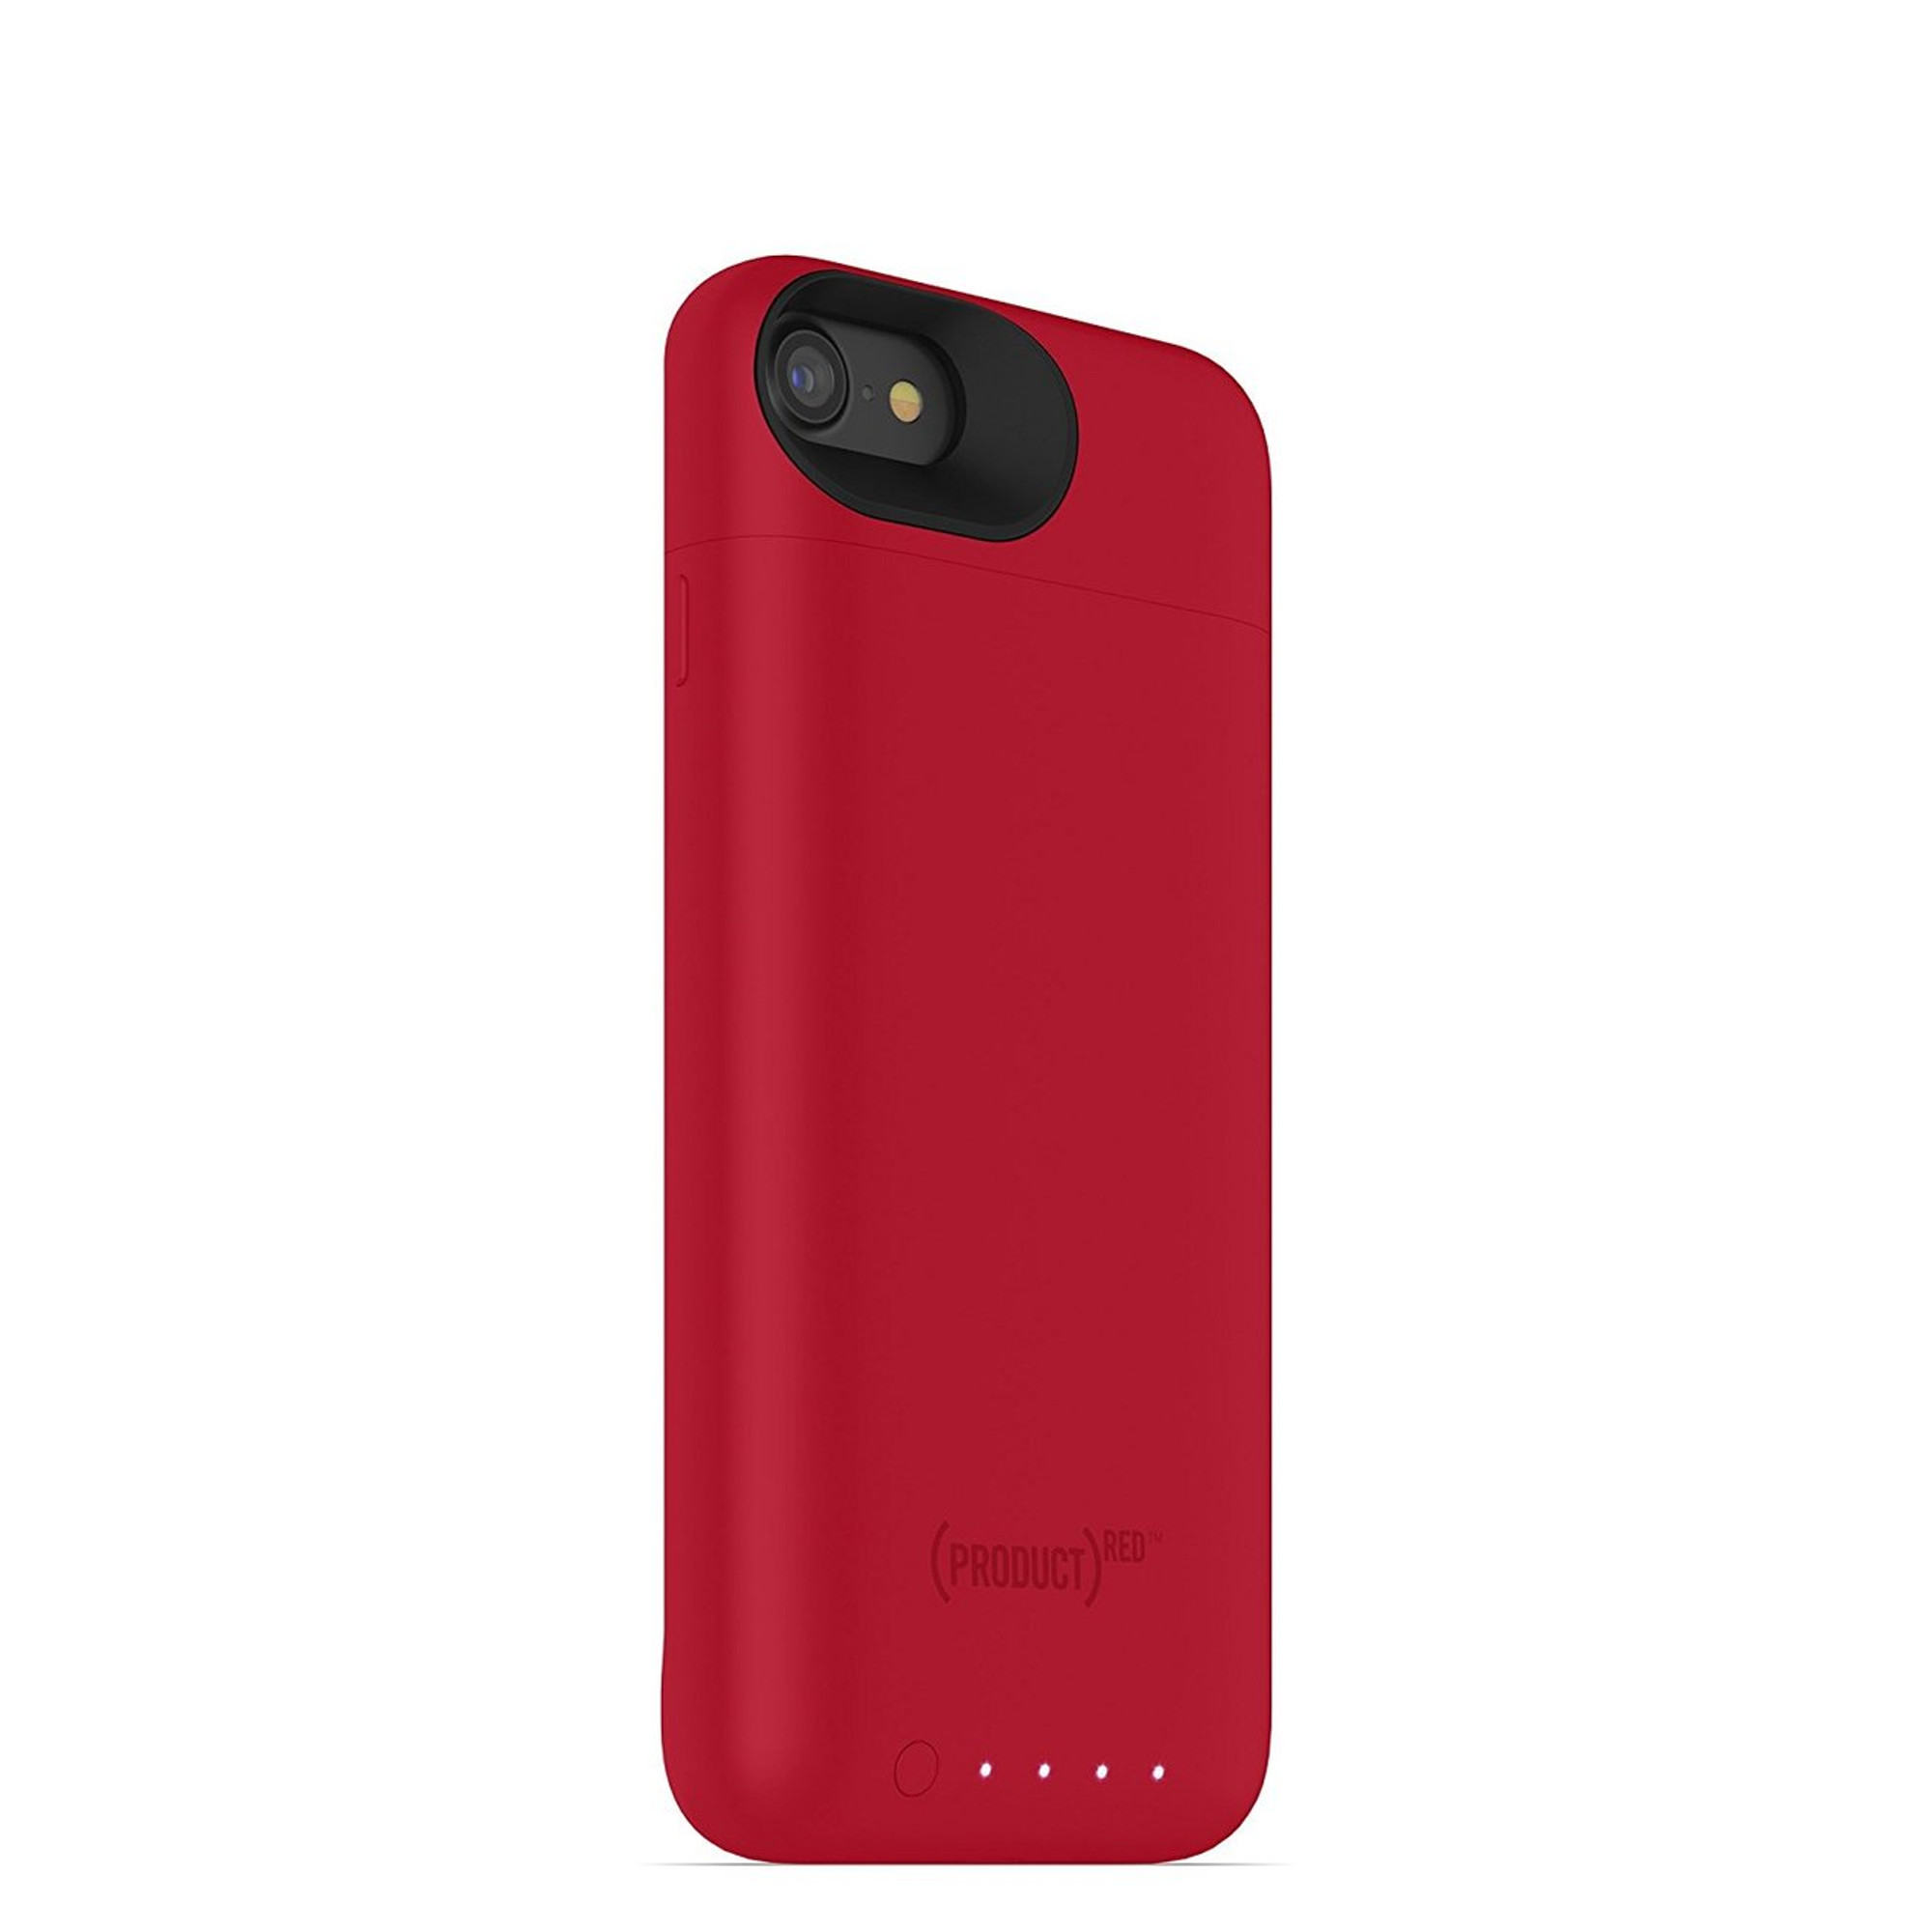 size 40 eee38 e3fc3 mophie juice pack air for iPhone 7 Plus - Red